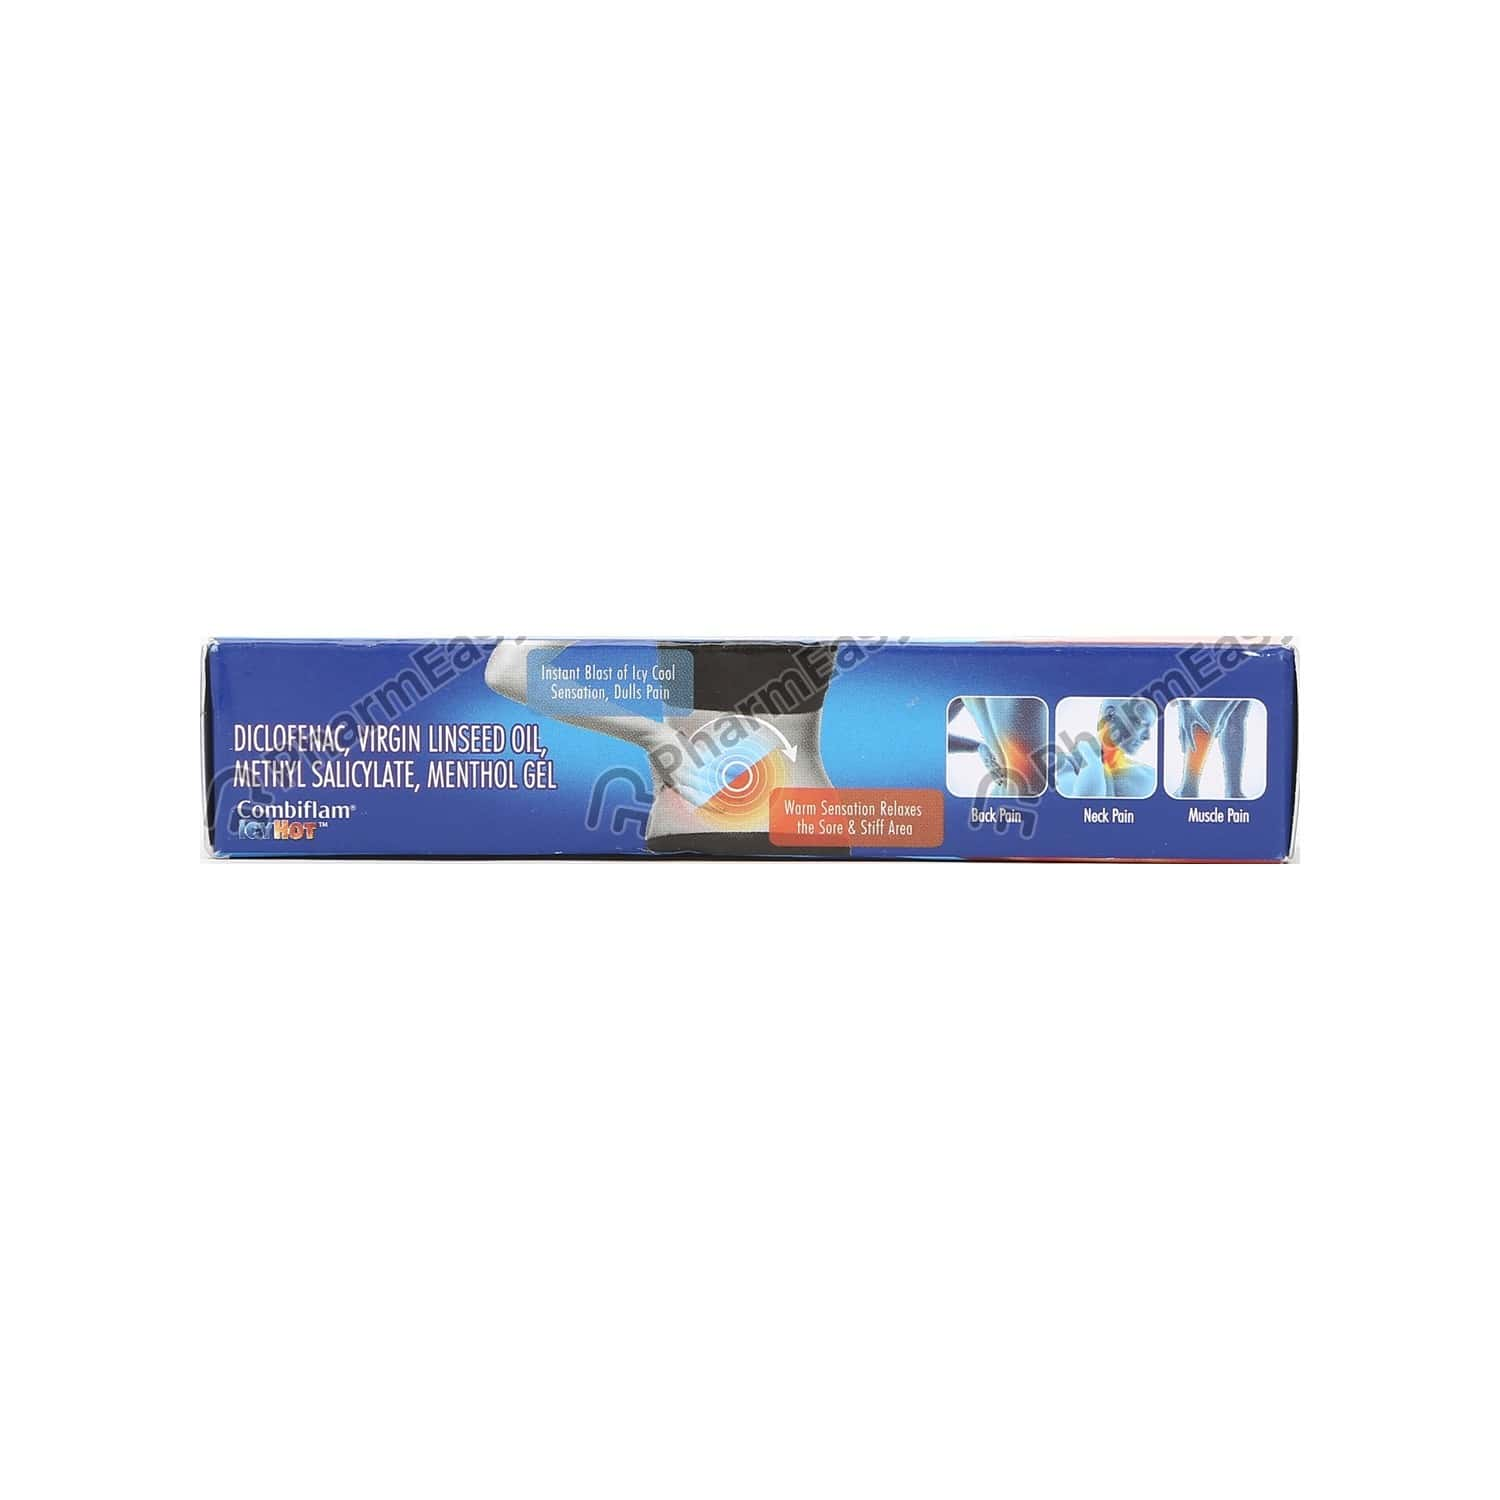 Combiflam Icyhot Fast Pain Relief Gel - 15 Gms Tube